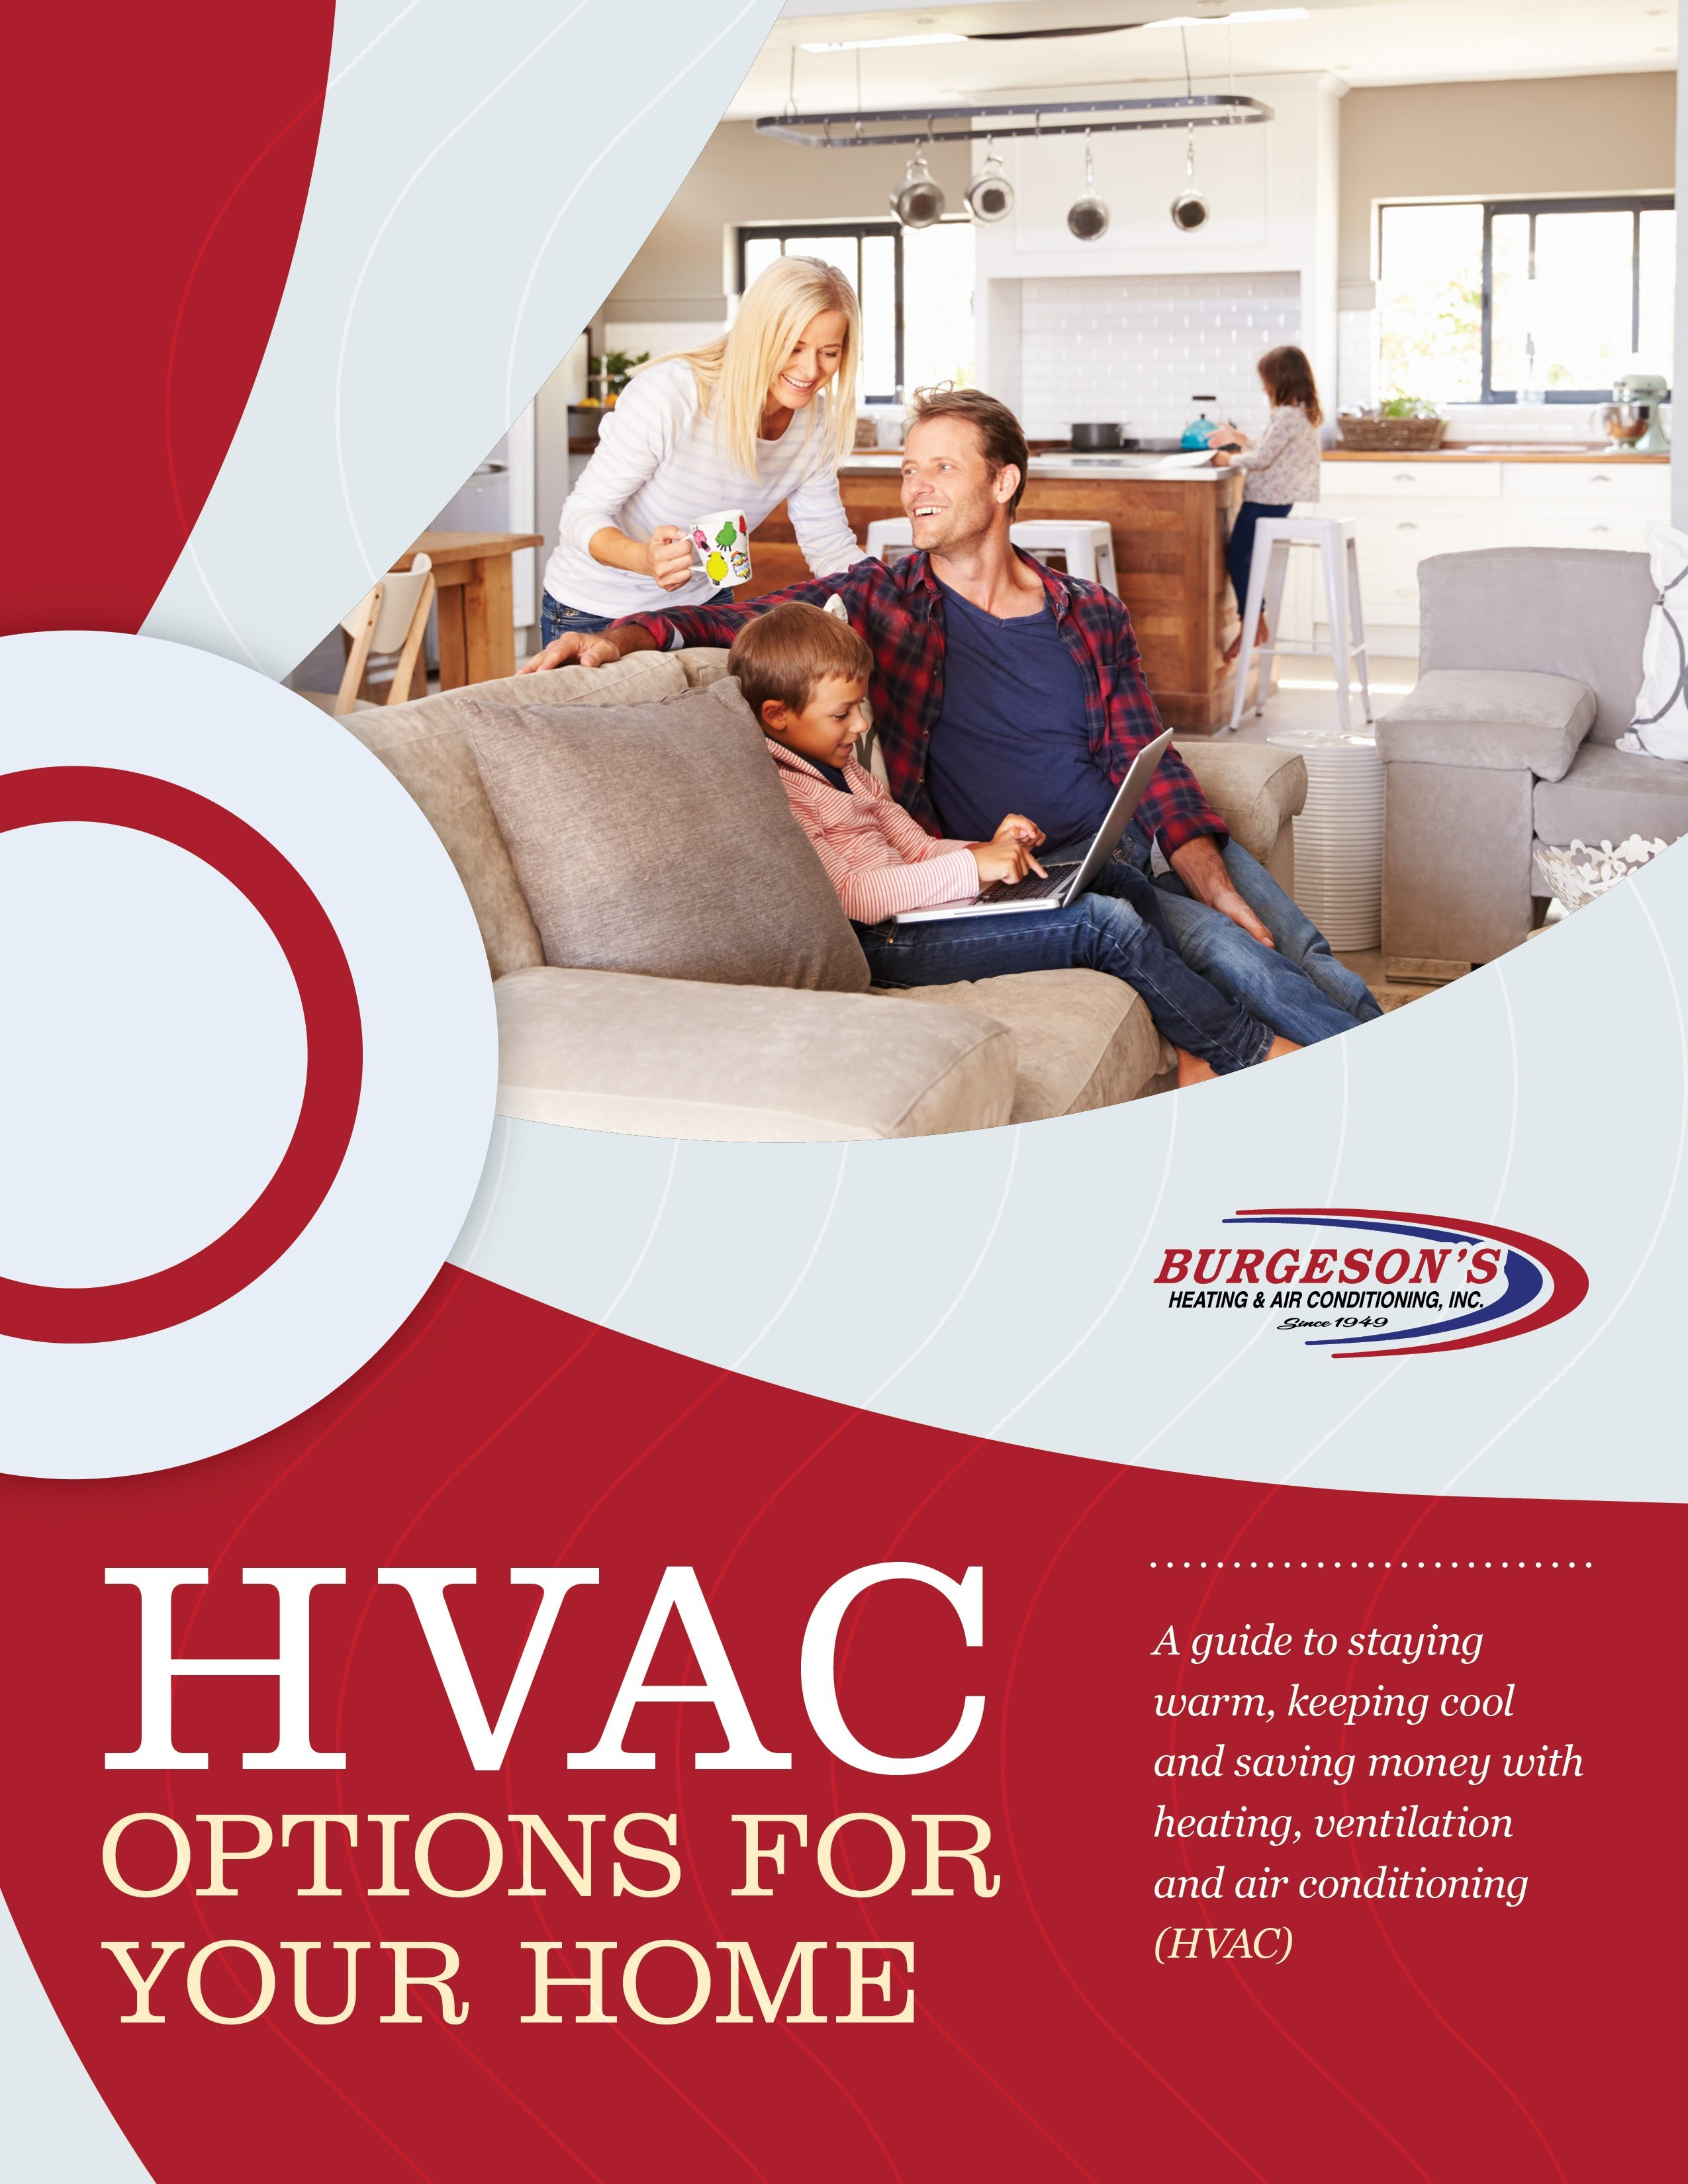 HVAC Options for Your Home